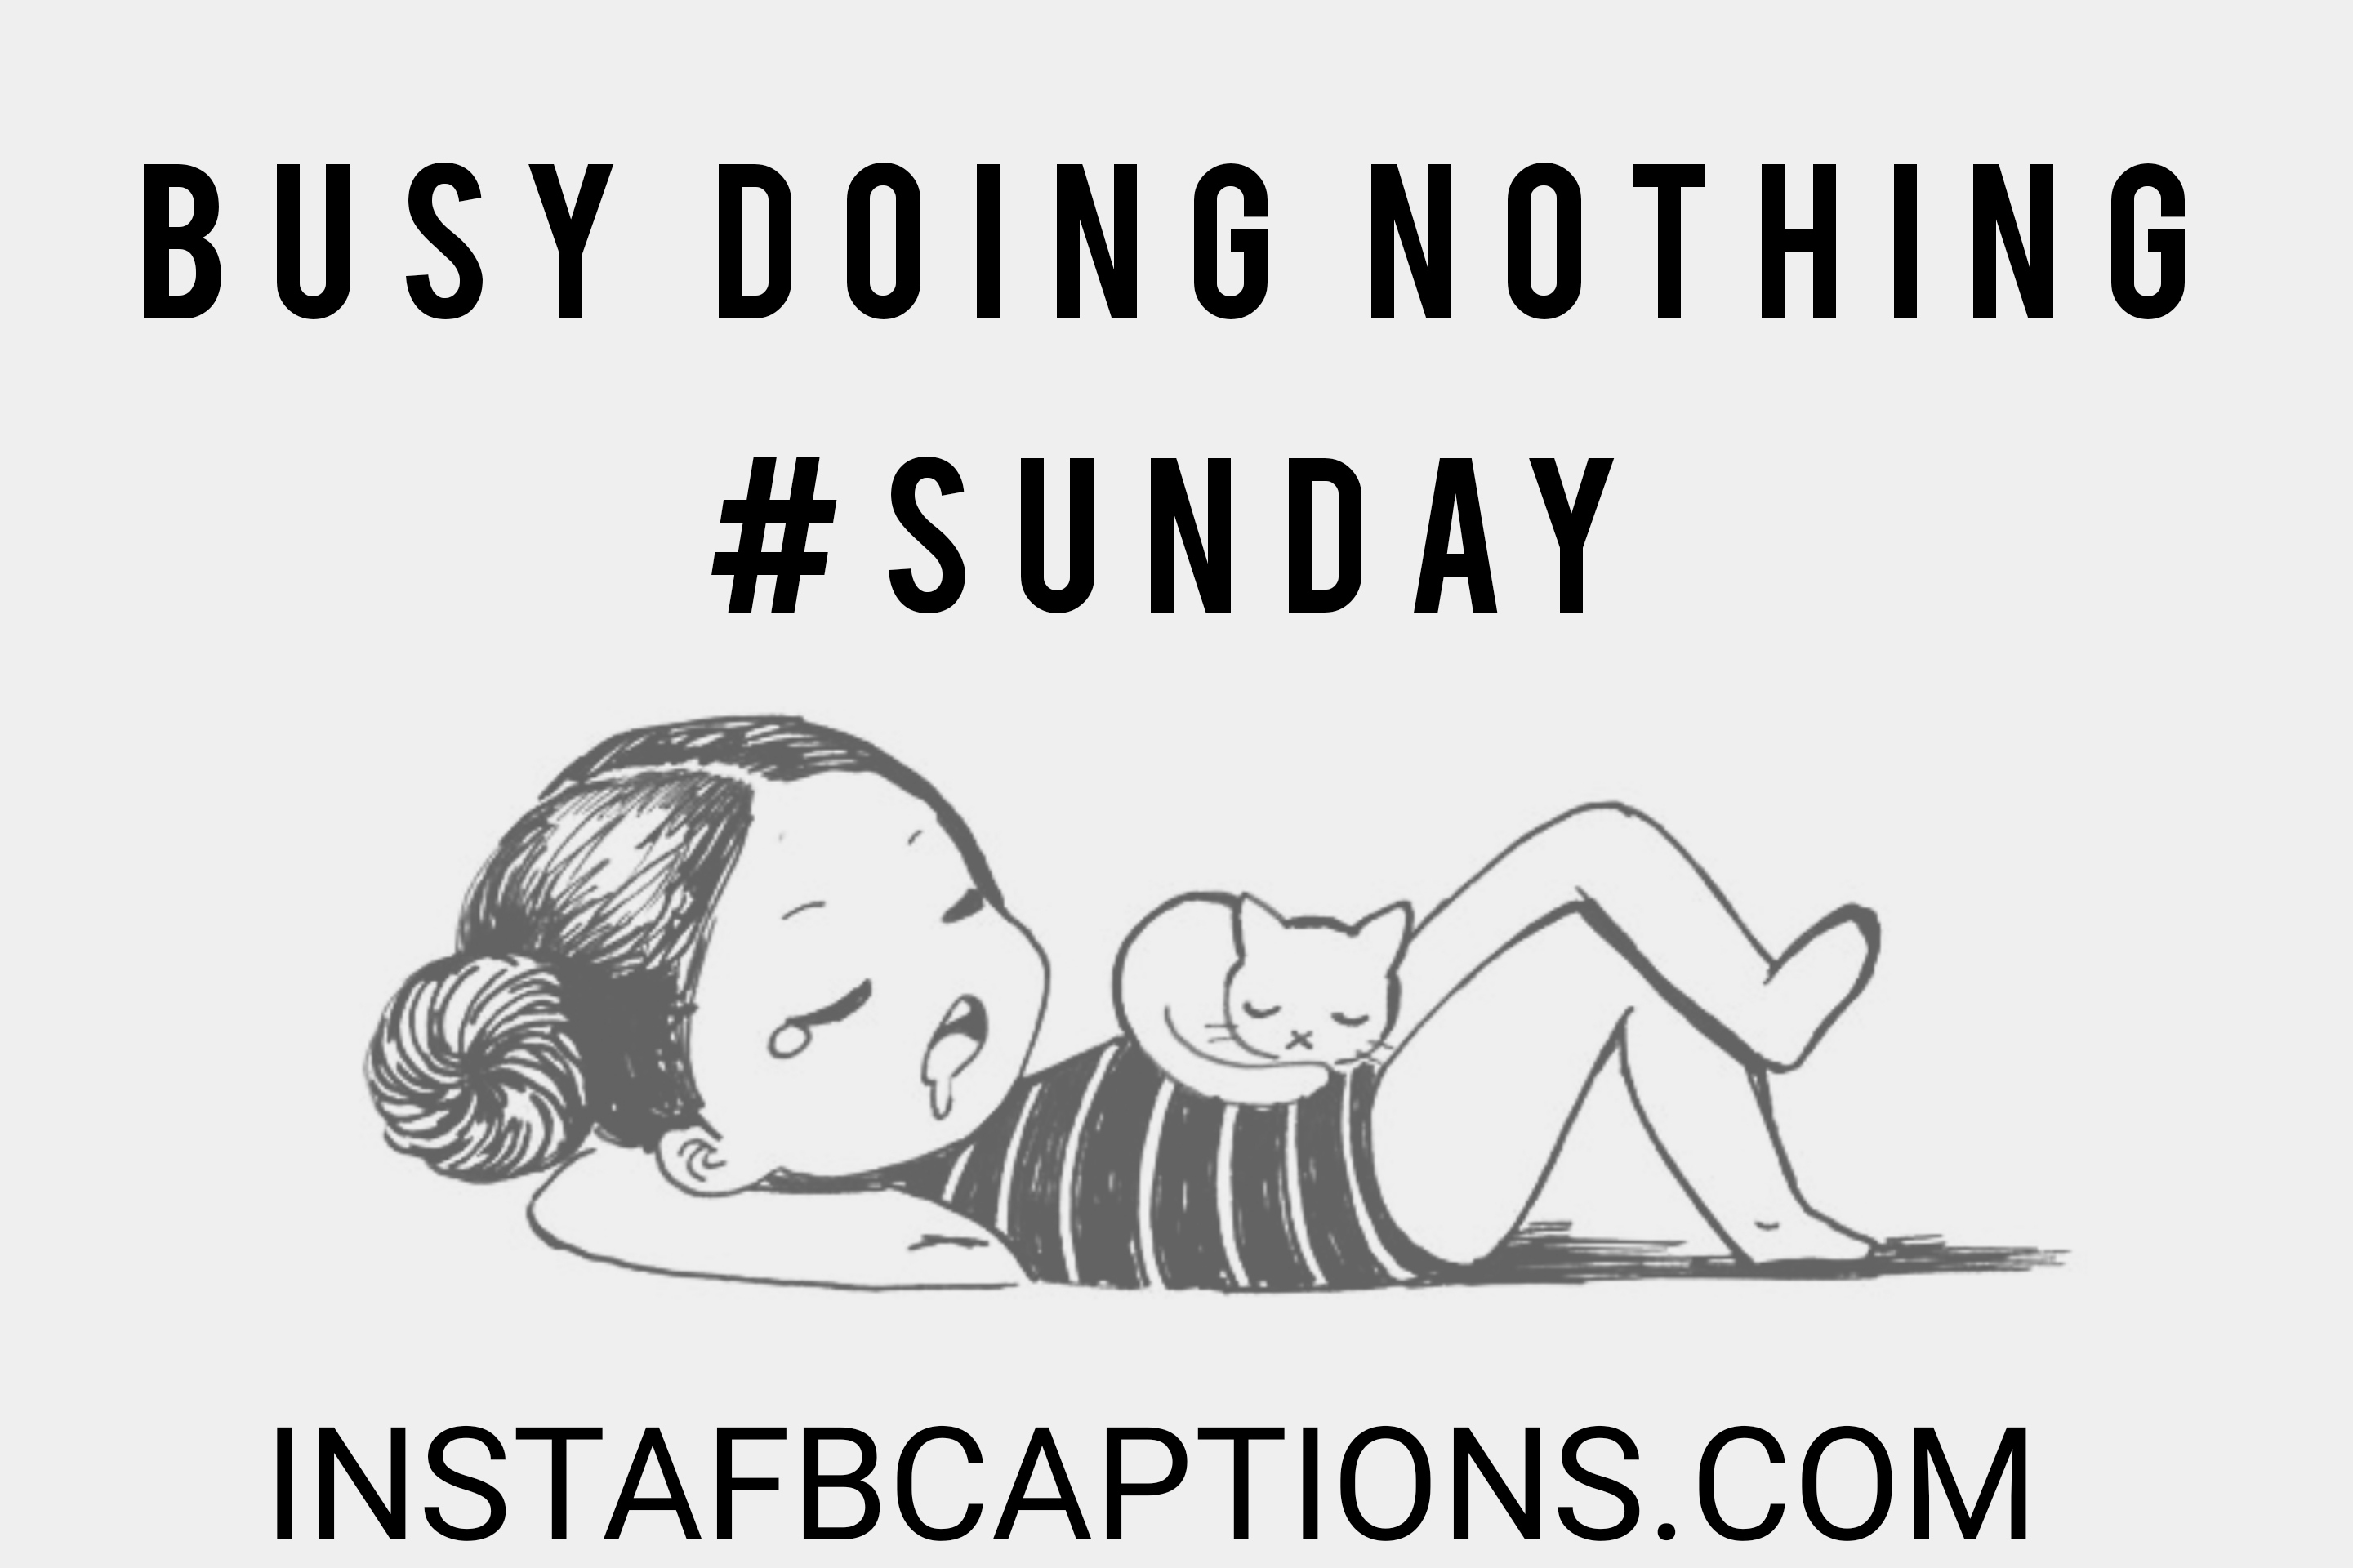 Busy Doing Nothing #sunday  - busy doing nothing sunday - 500+ WEEKEND Instagram Captions 2021